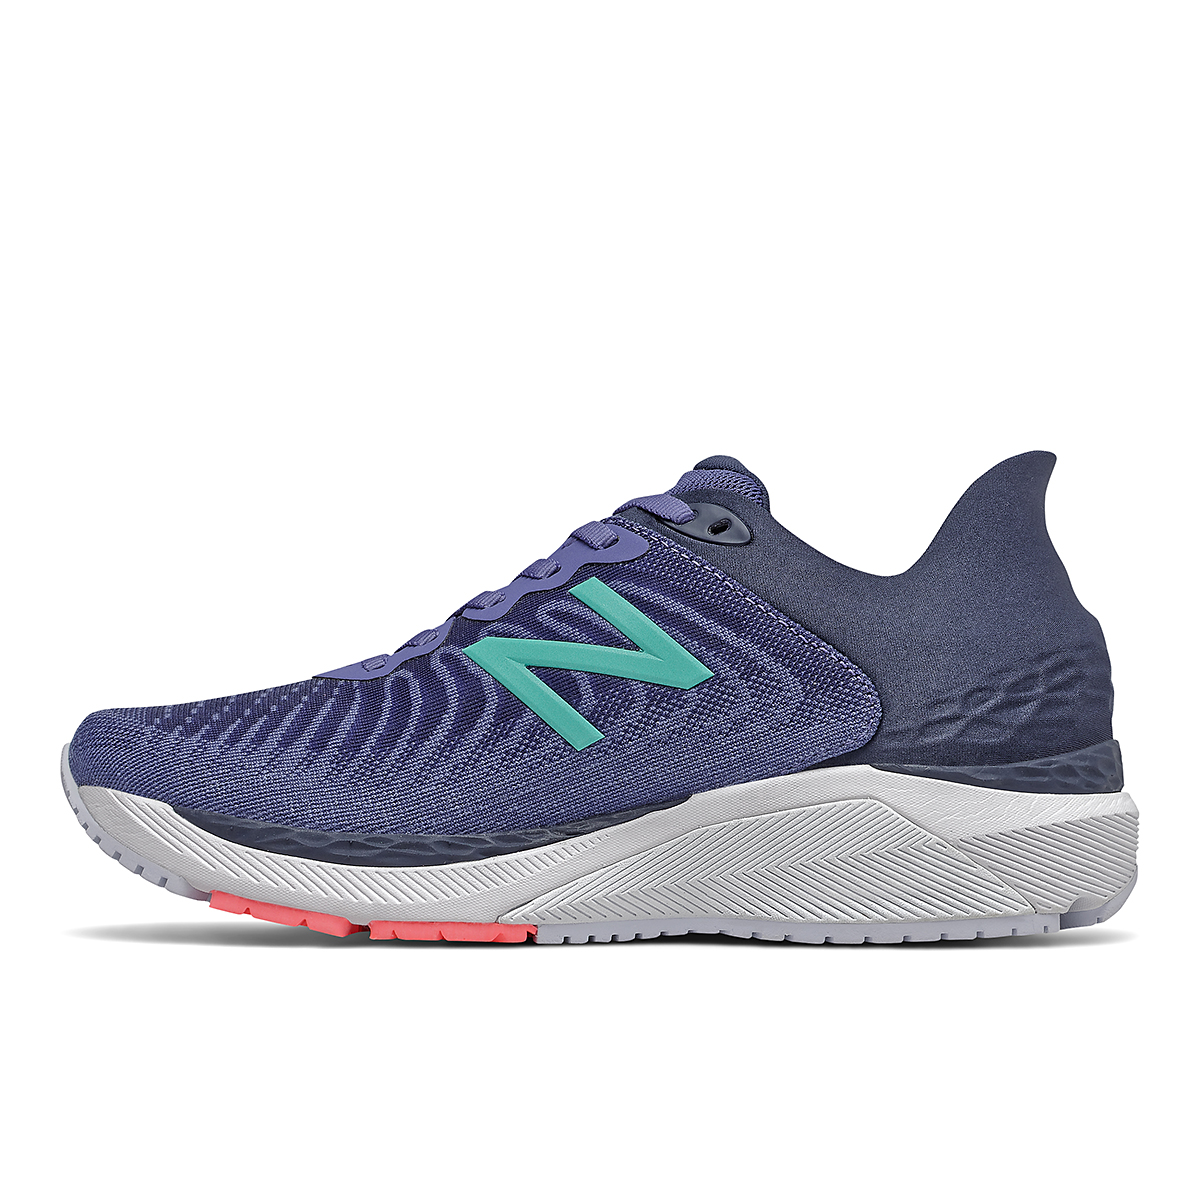 Women's New Balance 860V11 Running Shoe - Color: Magnetic Blue - Size: 5 - Width: Narrow, Magnetic Blue, large, image 2